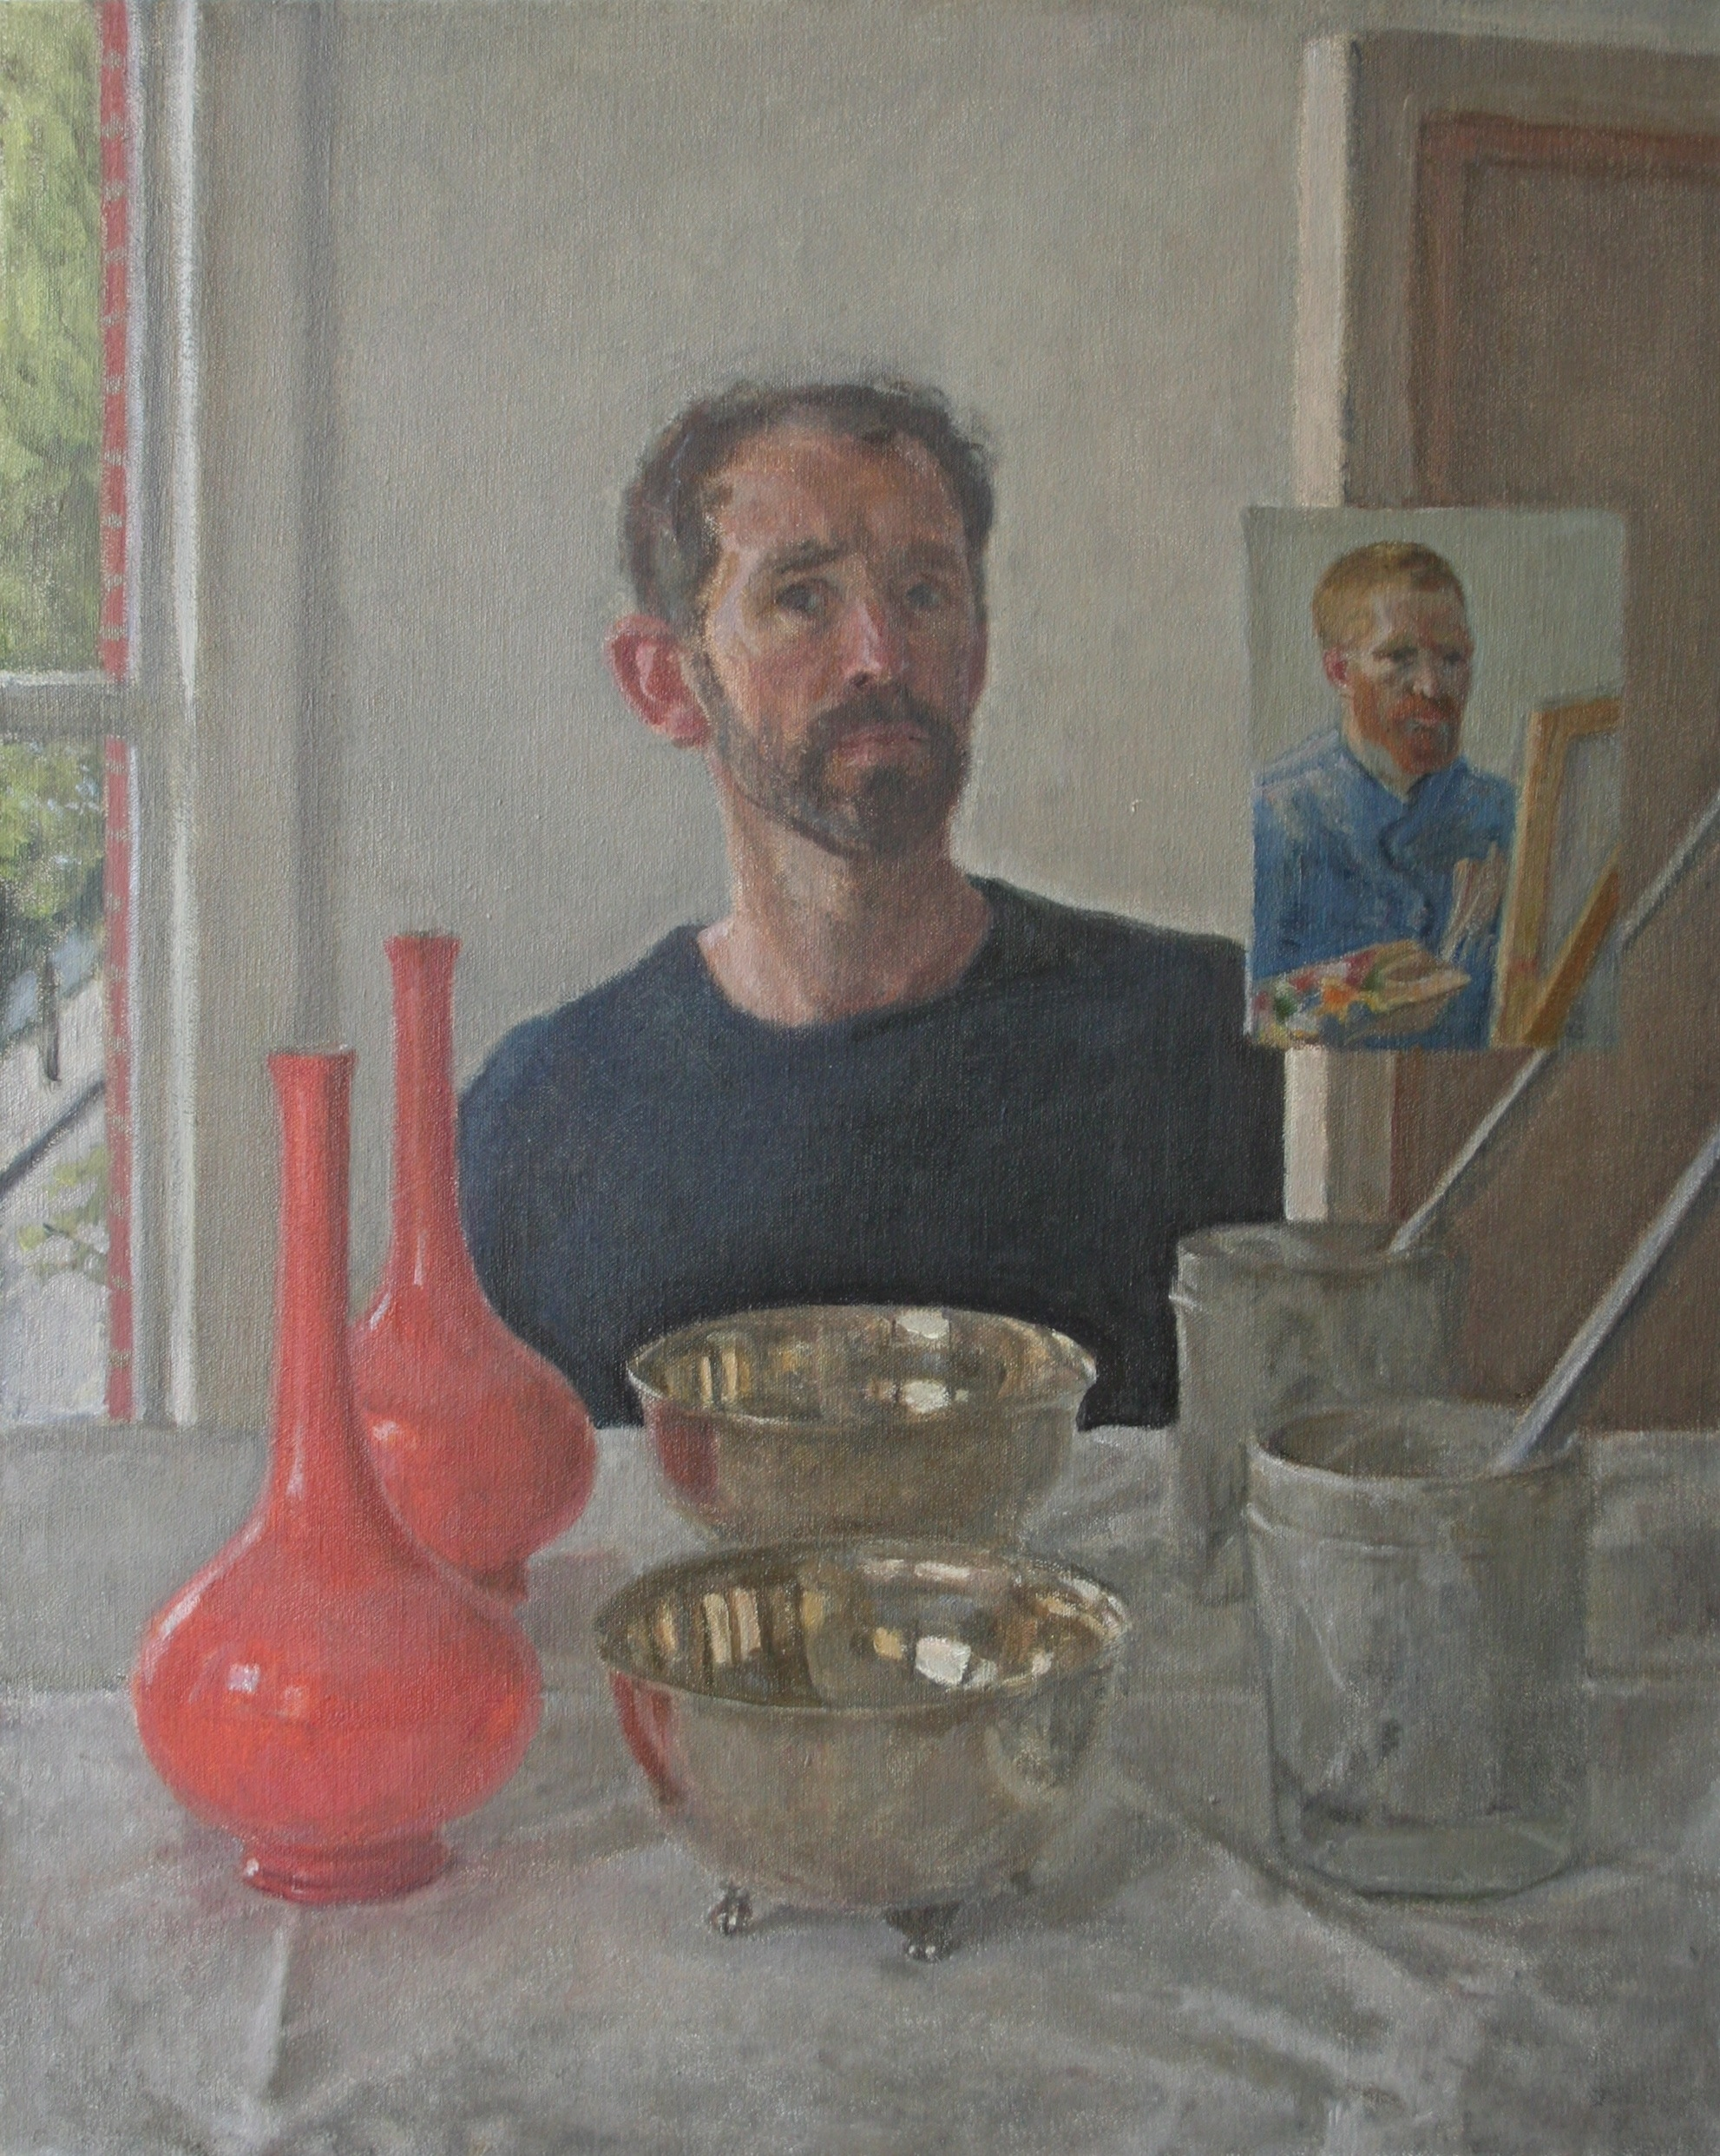 David Caldwell, Things in Twos (Self-portrait)